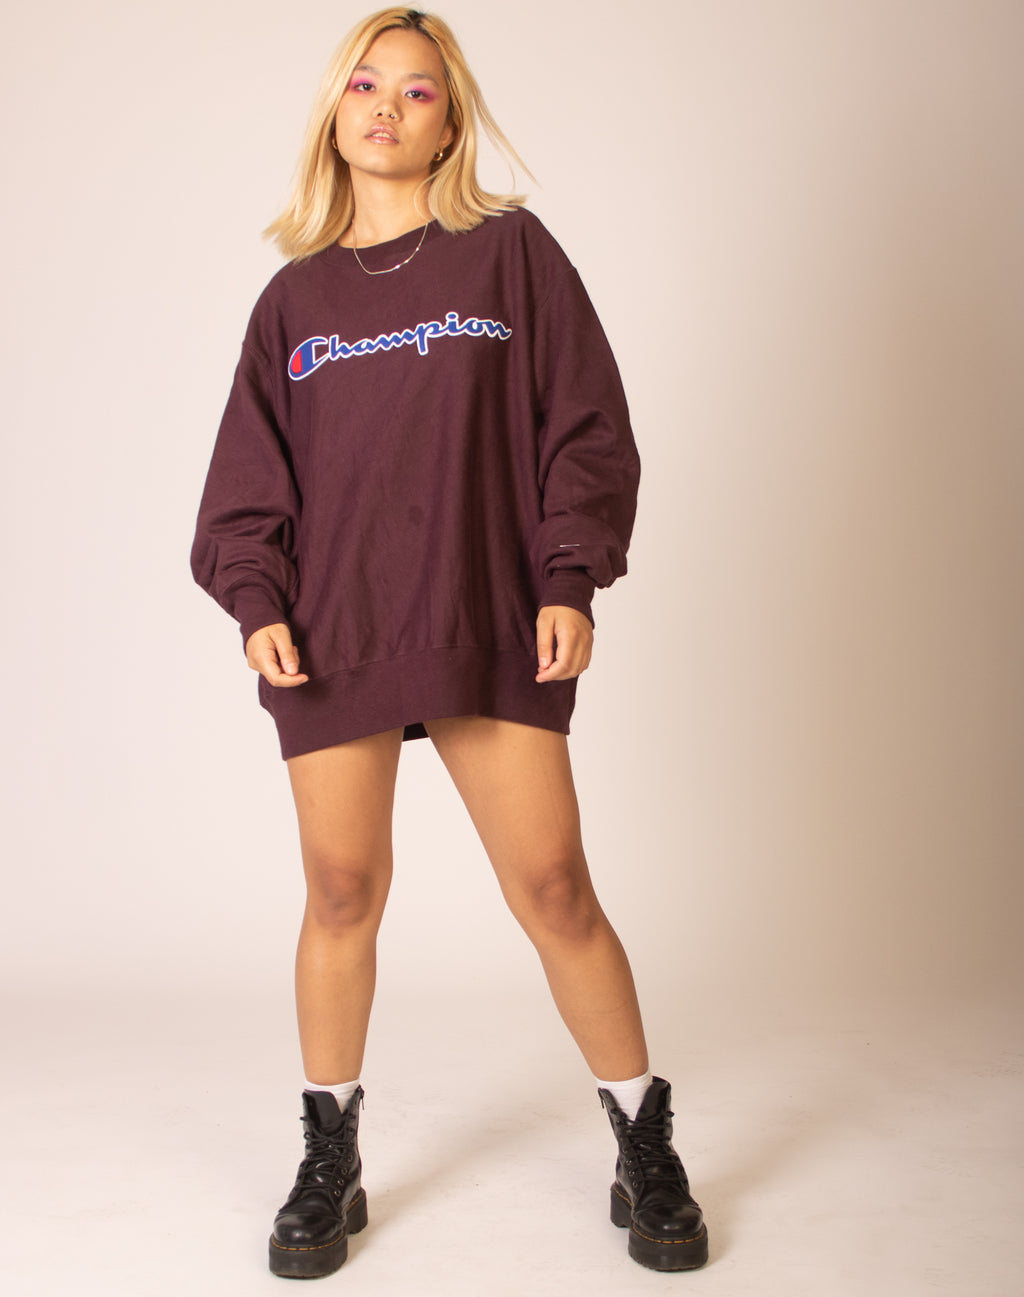 CHAMPION OVERSIZED BURGUNDY JUMPER